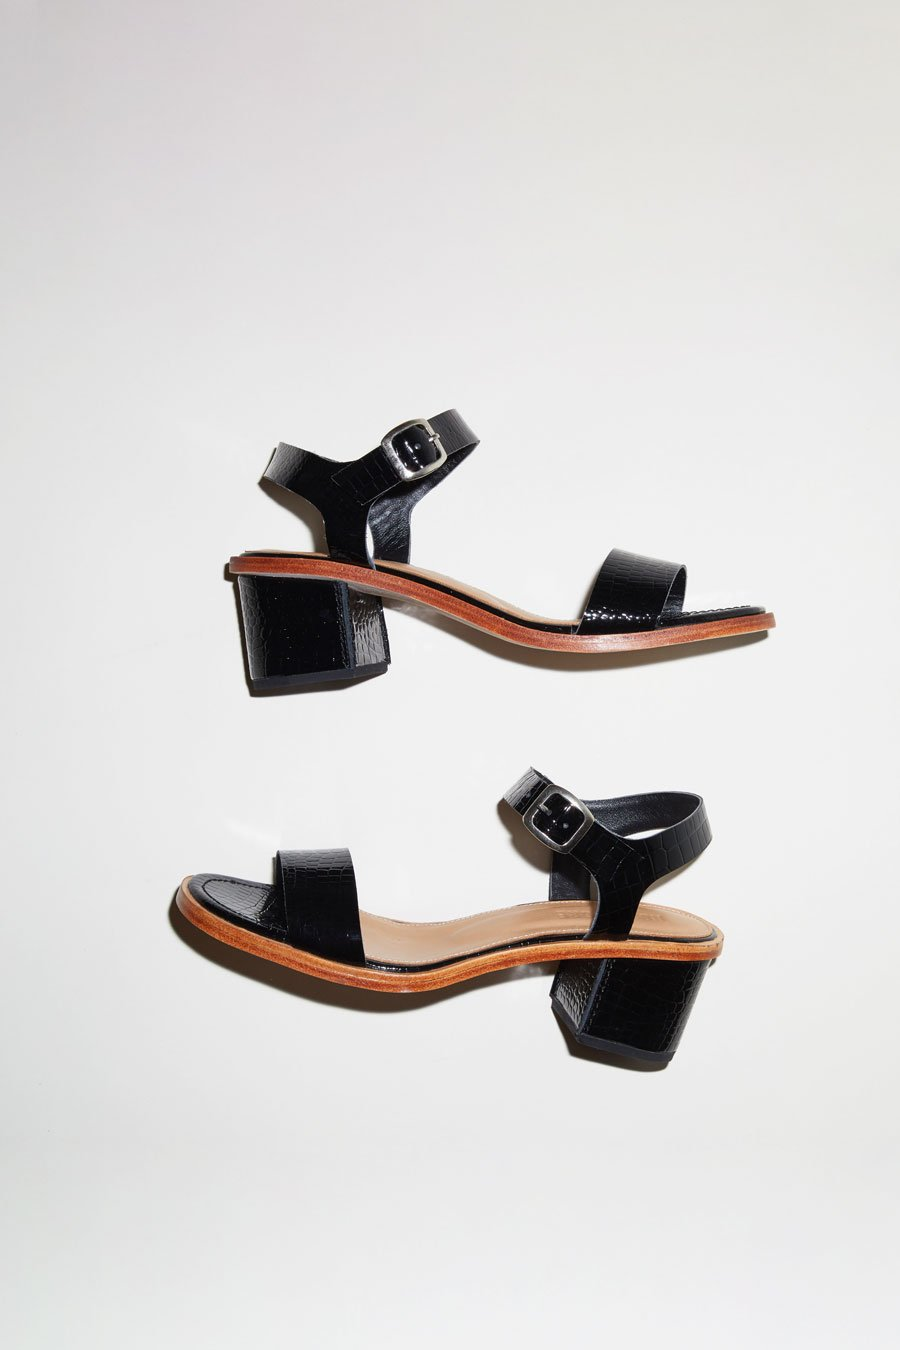 No.6 Palermo Sandal in Black Croc